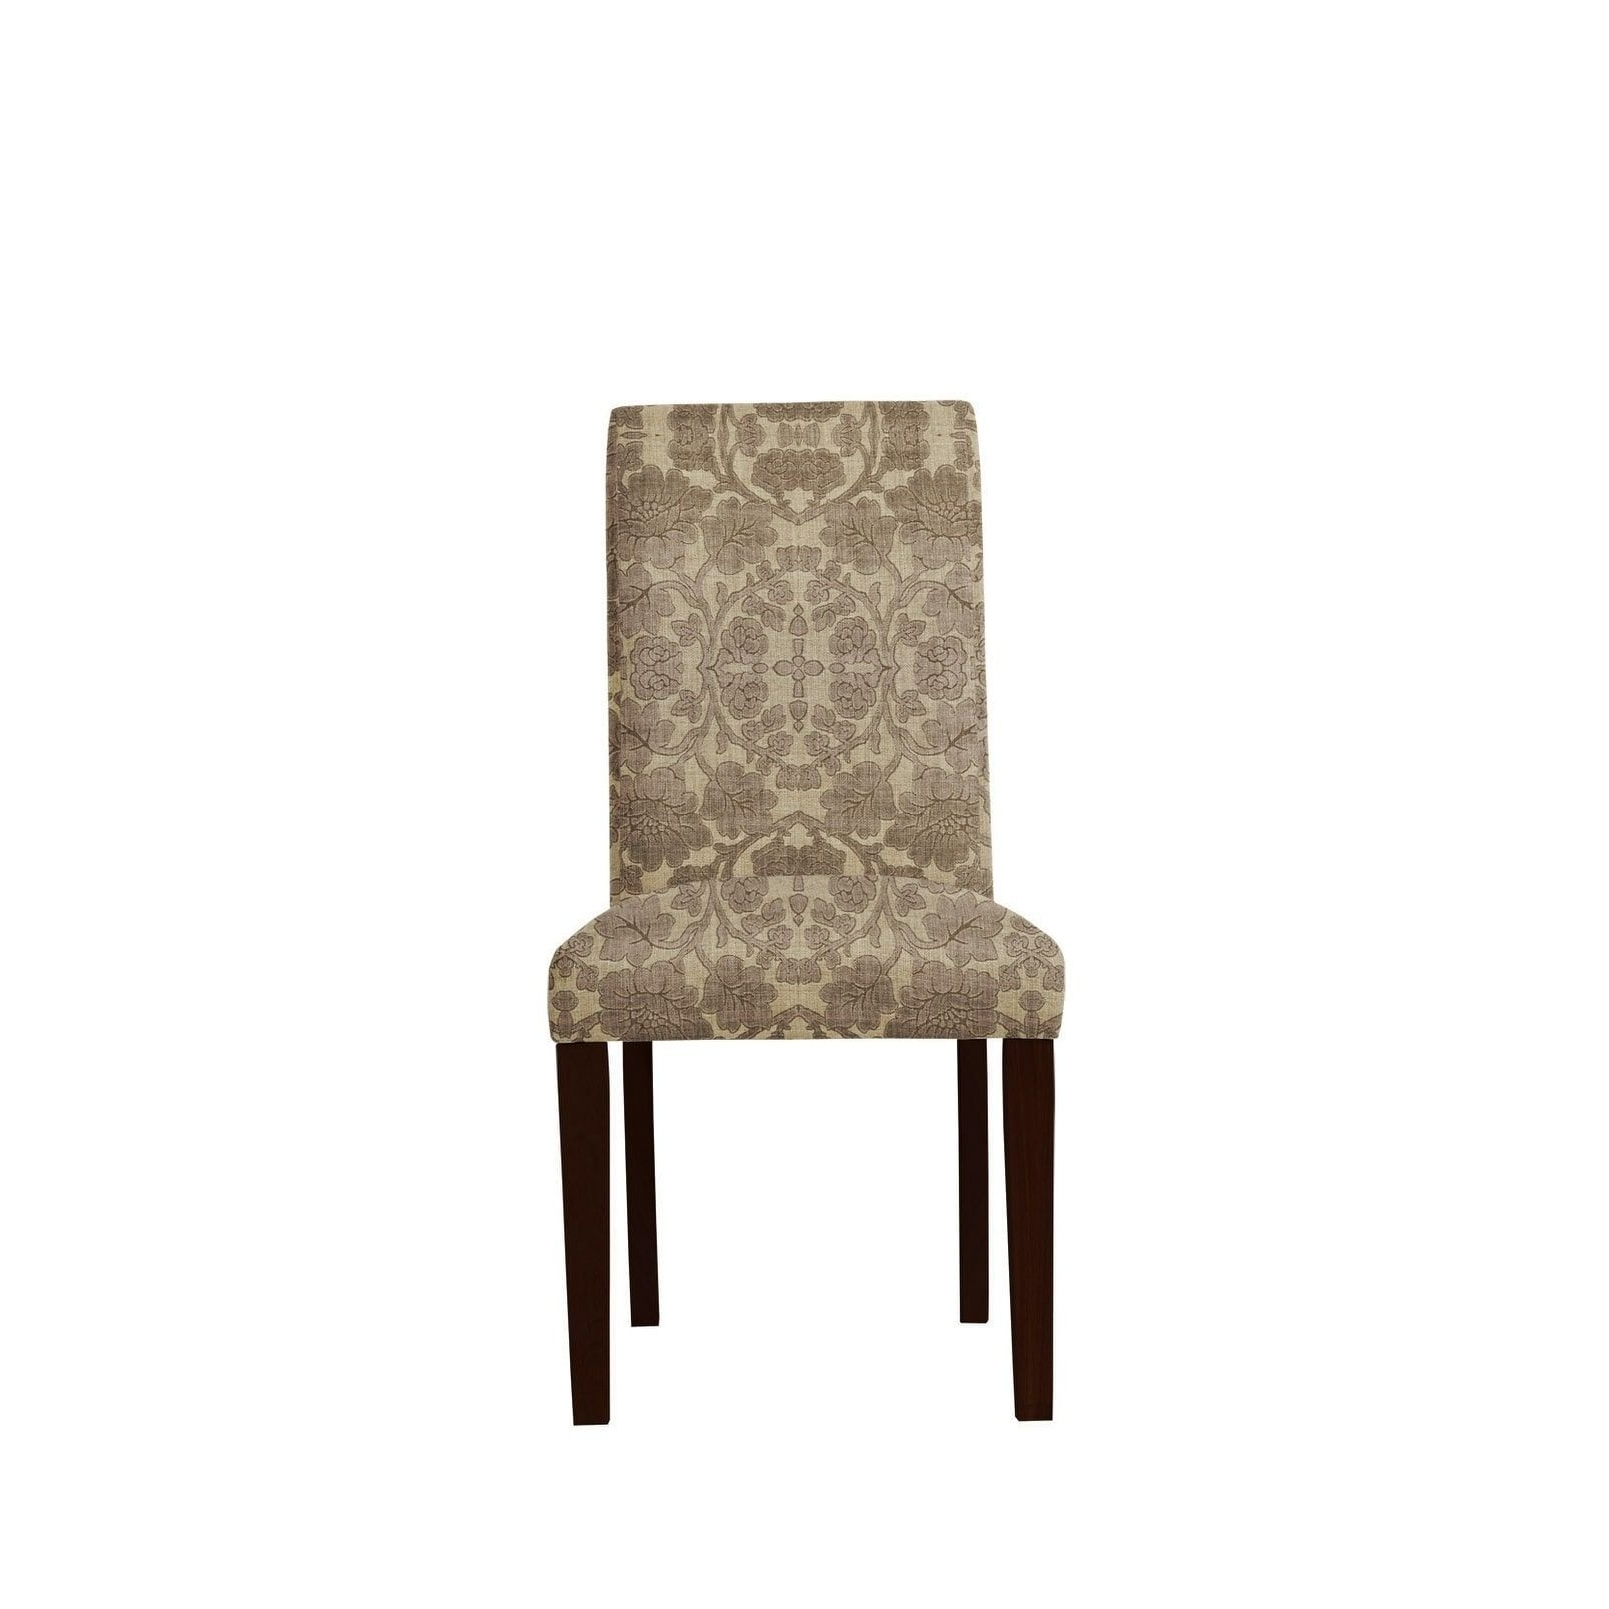 Caira Upholstered Diamond Back Side Chairs Inside 2018 Set Of 2 Daniala Side Chairs With Plush Fabric 648, Brown/floral (View 3 of 20)